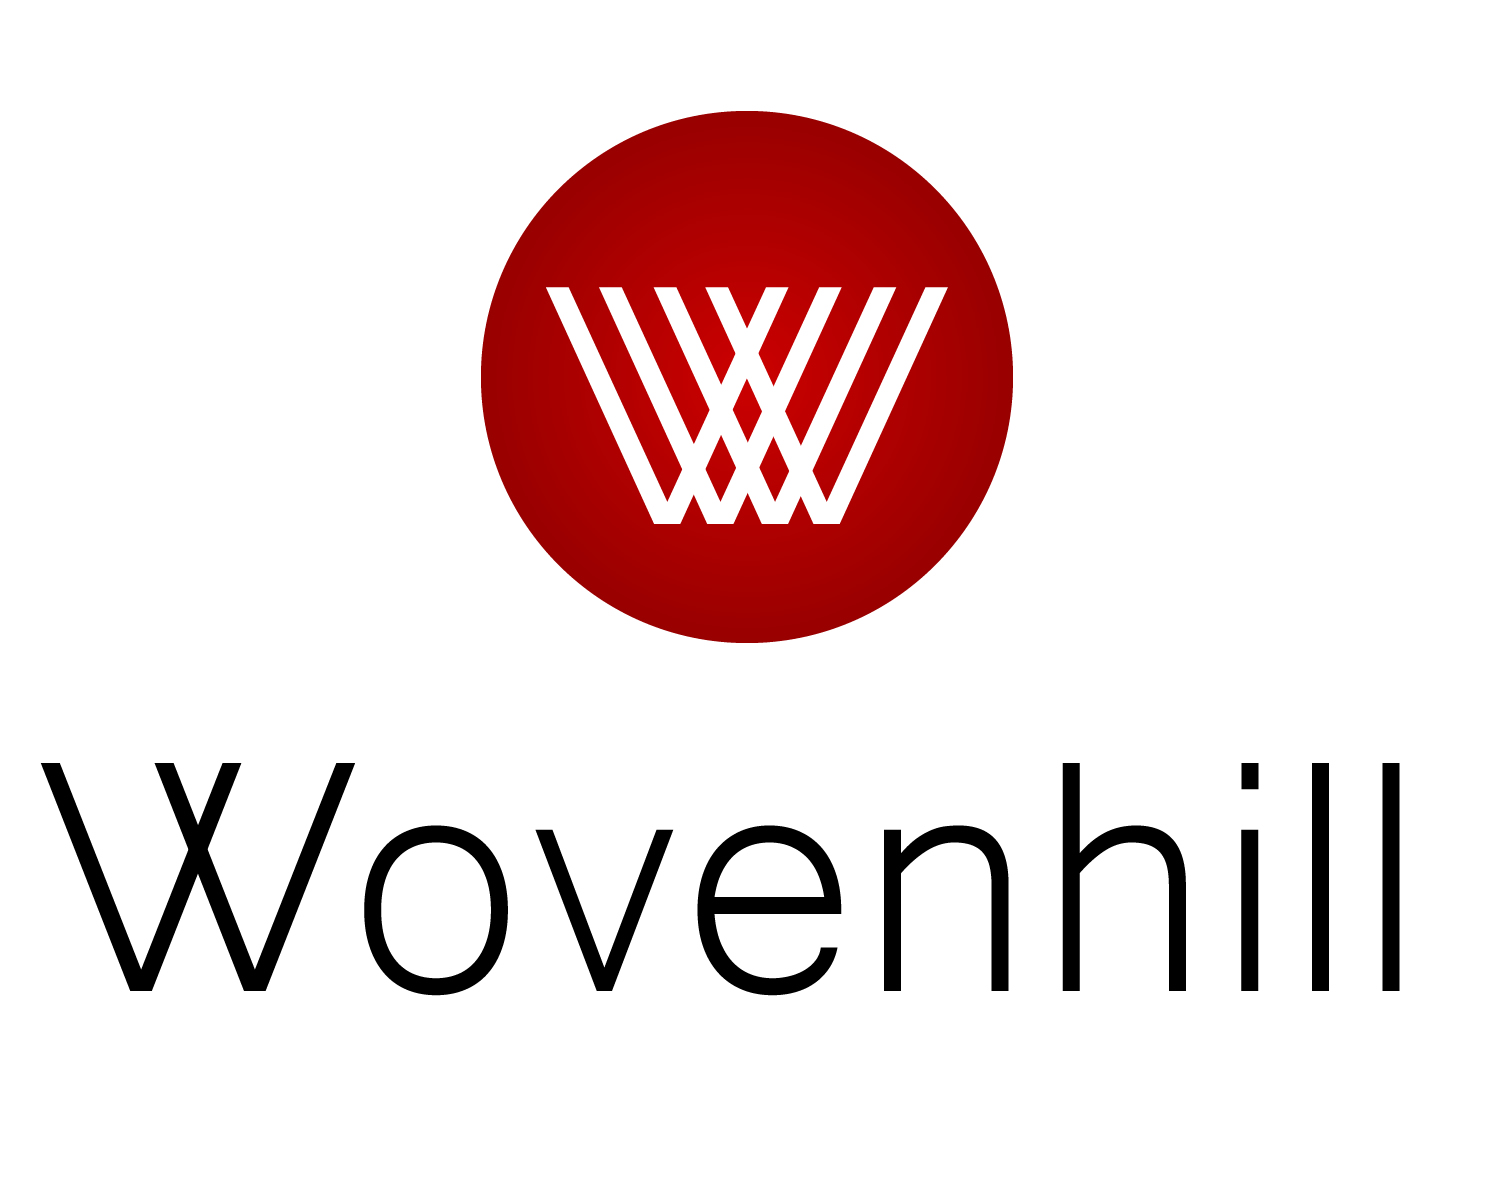 Wovenhill - www.wovenhill.co.uk